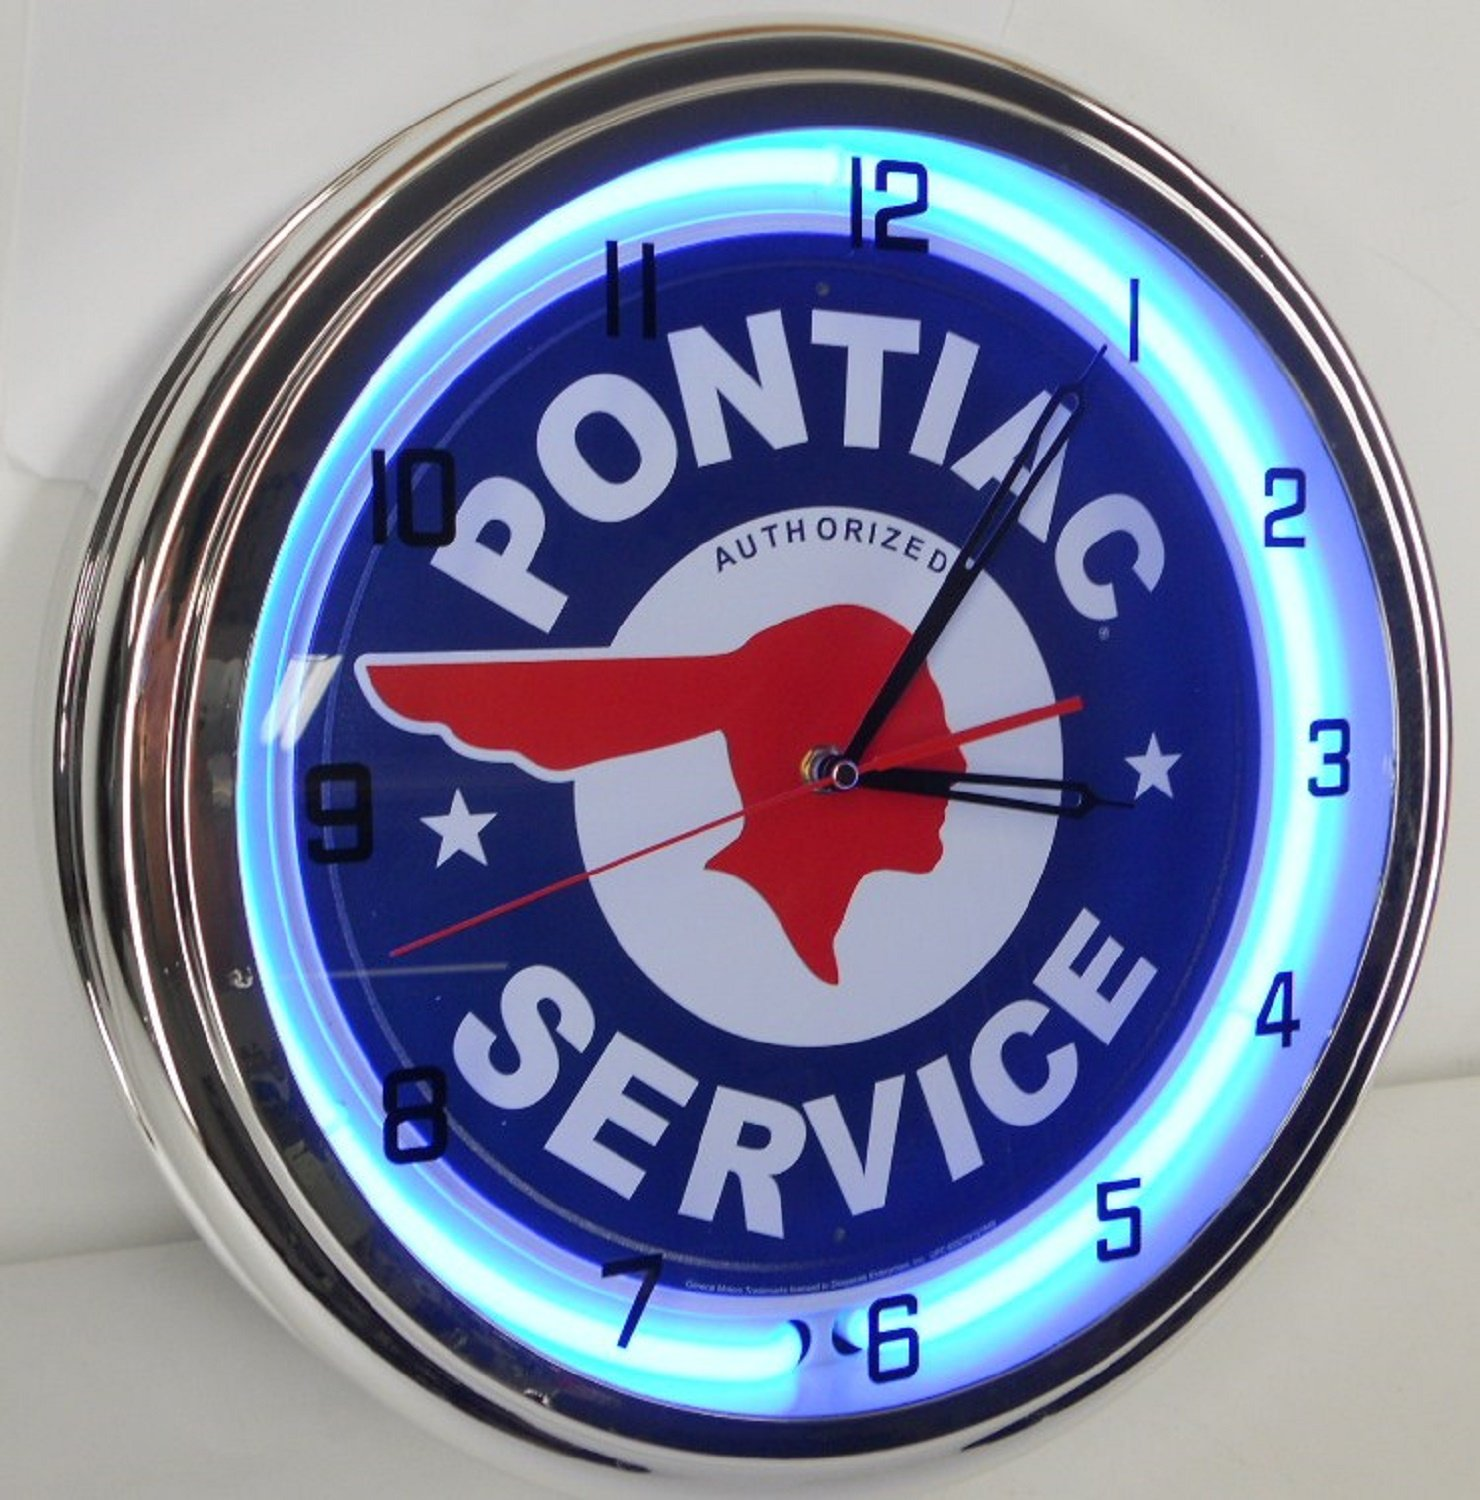 Pontiac Service 15'' Neon Clock Parts Car Garage Emblem Logo Sign Judge Firebird Blue by Pontiac